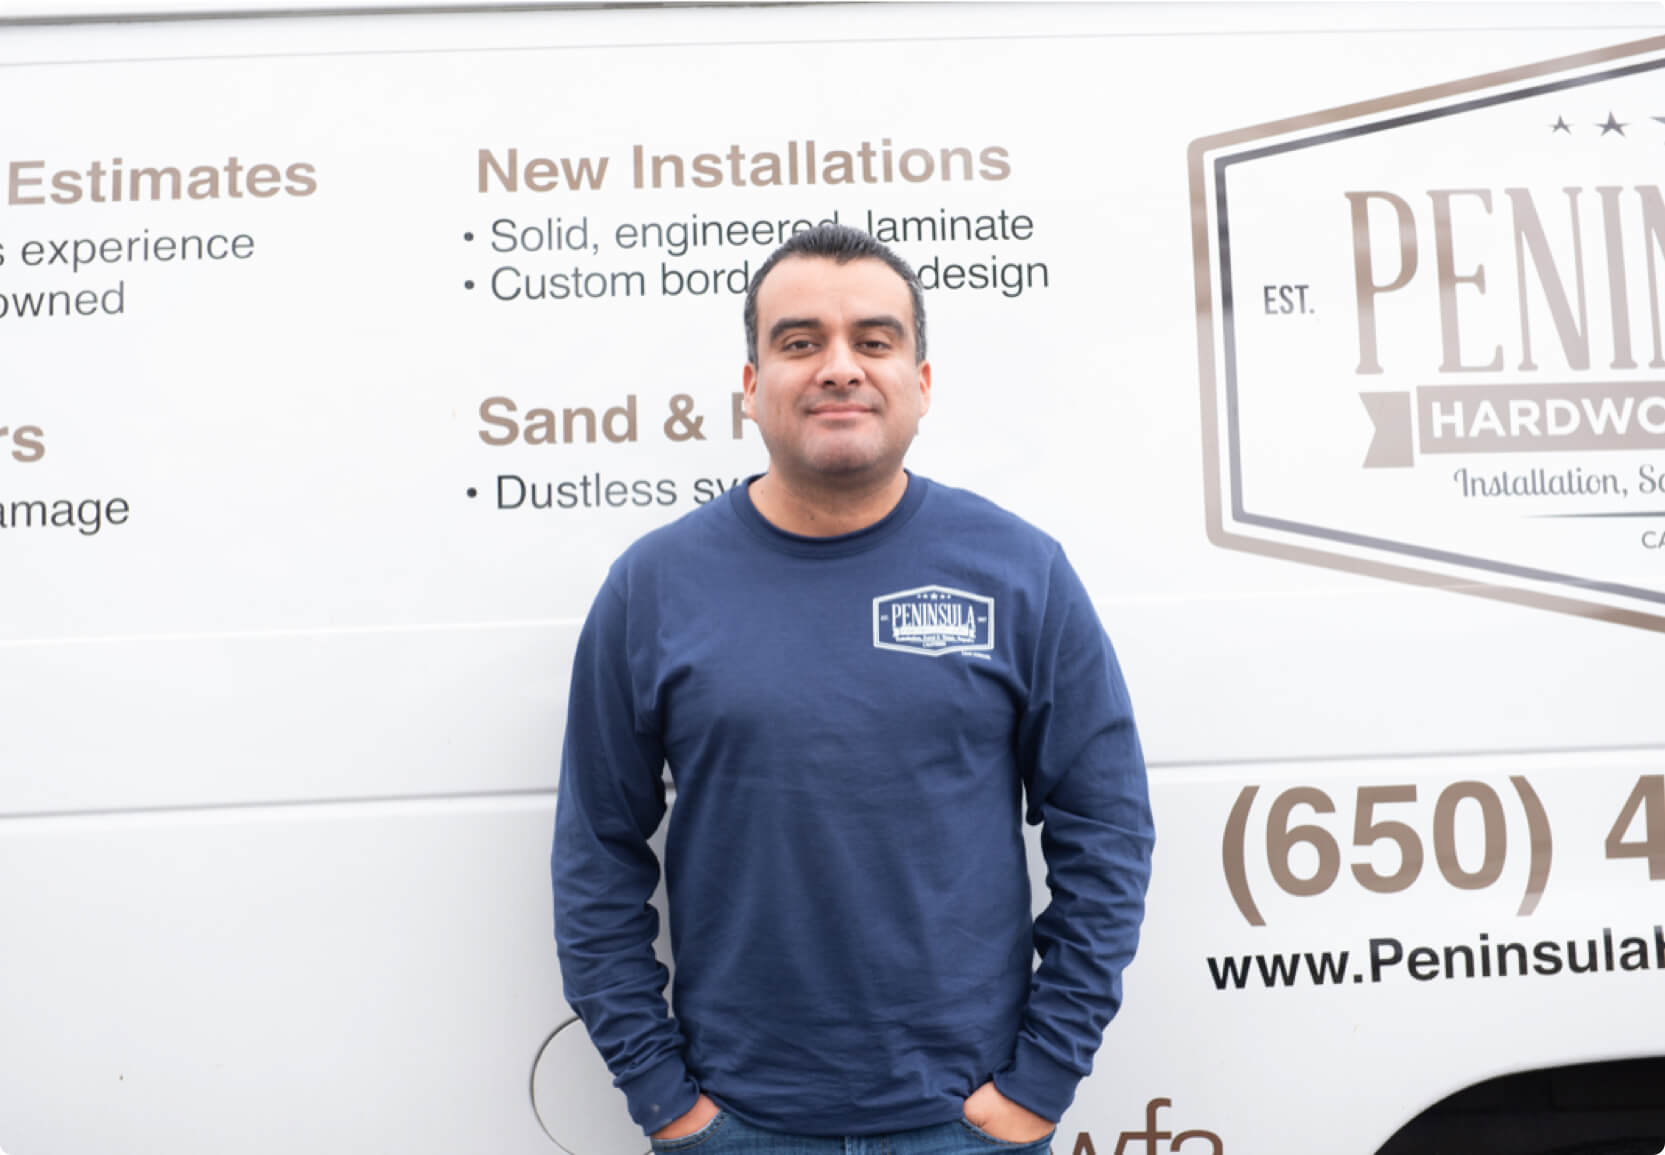 Hourly customer Joel Arias of Peninsula Hardwood Floors in front of their van